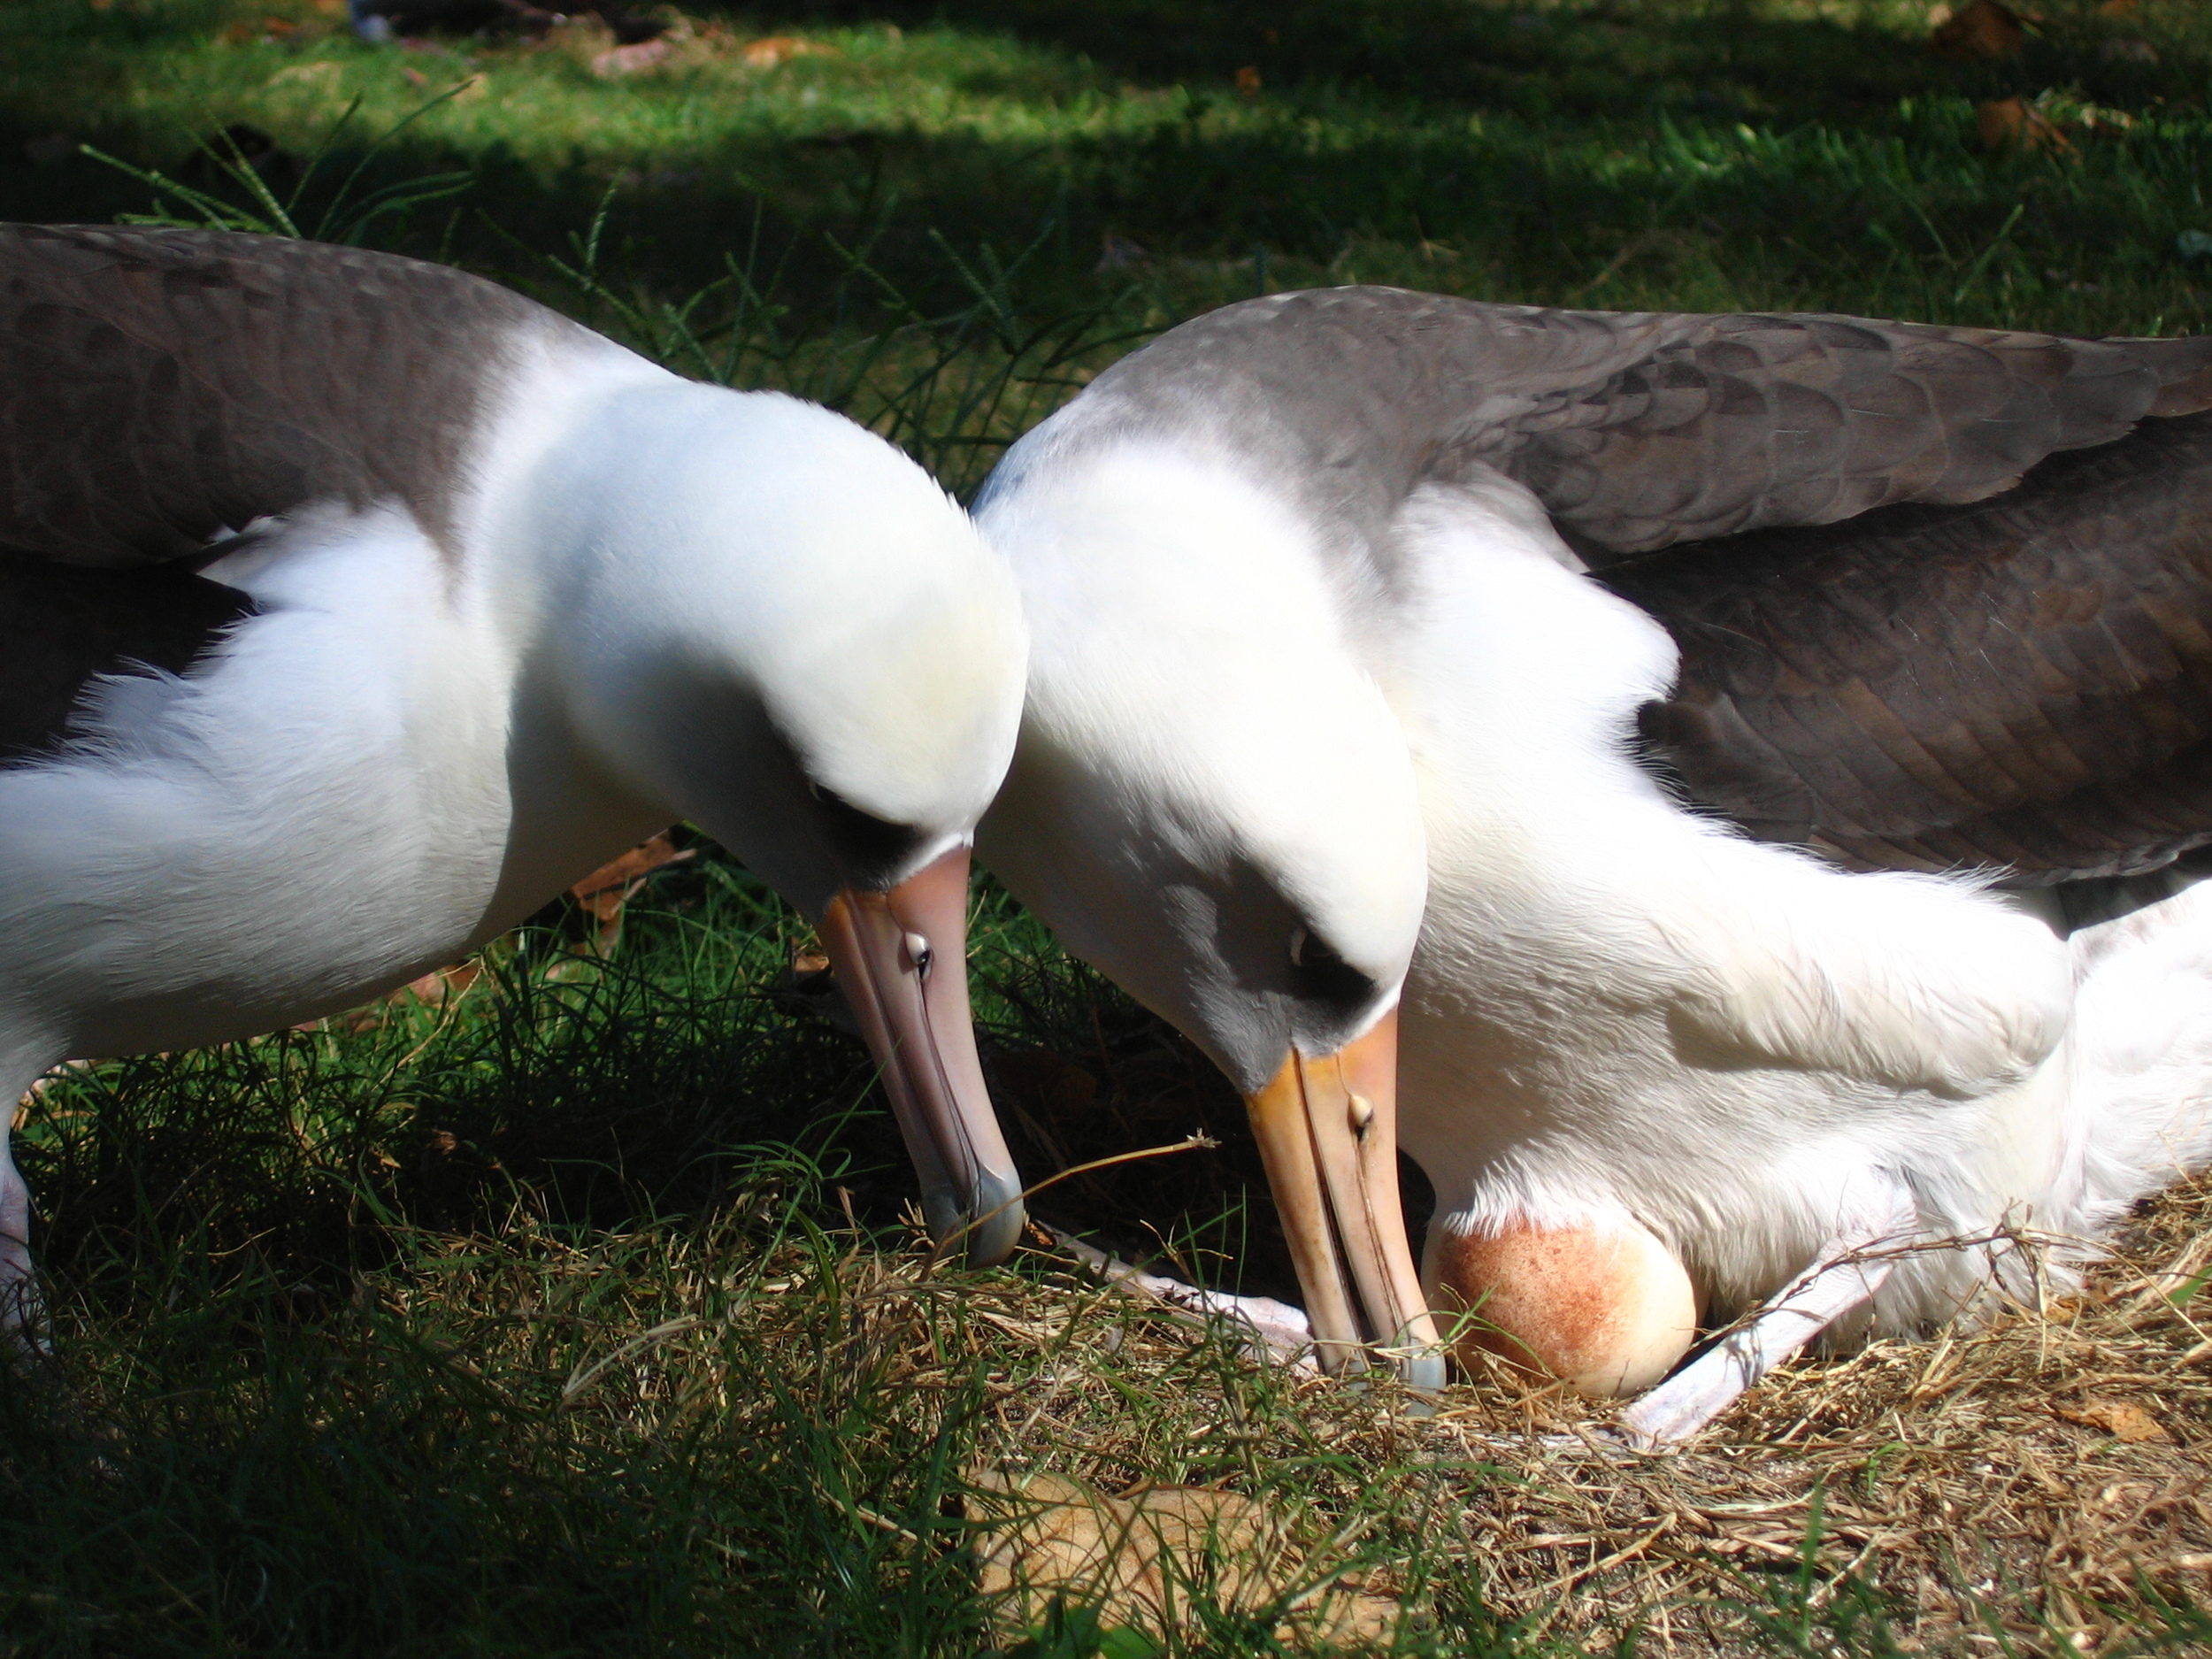 Laysan albatrosses raise their offspring as a mating pair, but not necessarily with a member of the opposite sex.   David Patte, U.S. Fish and Wildlife Service/Flickr  (CC BY 2.0)